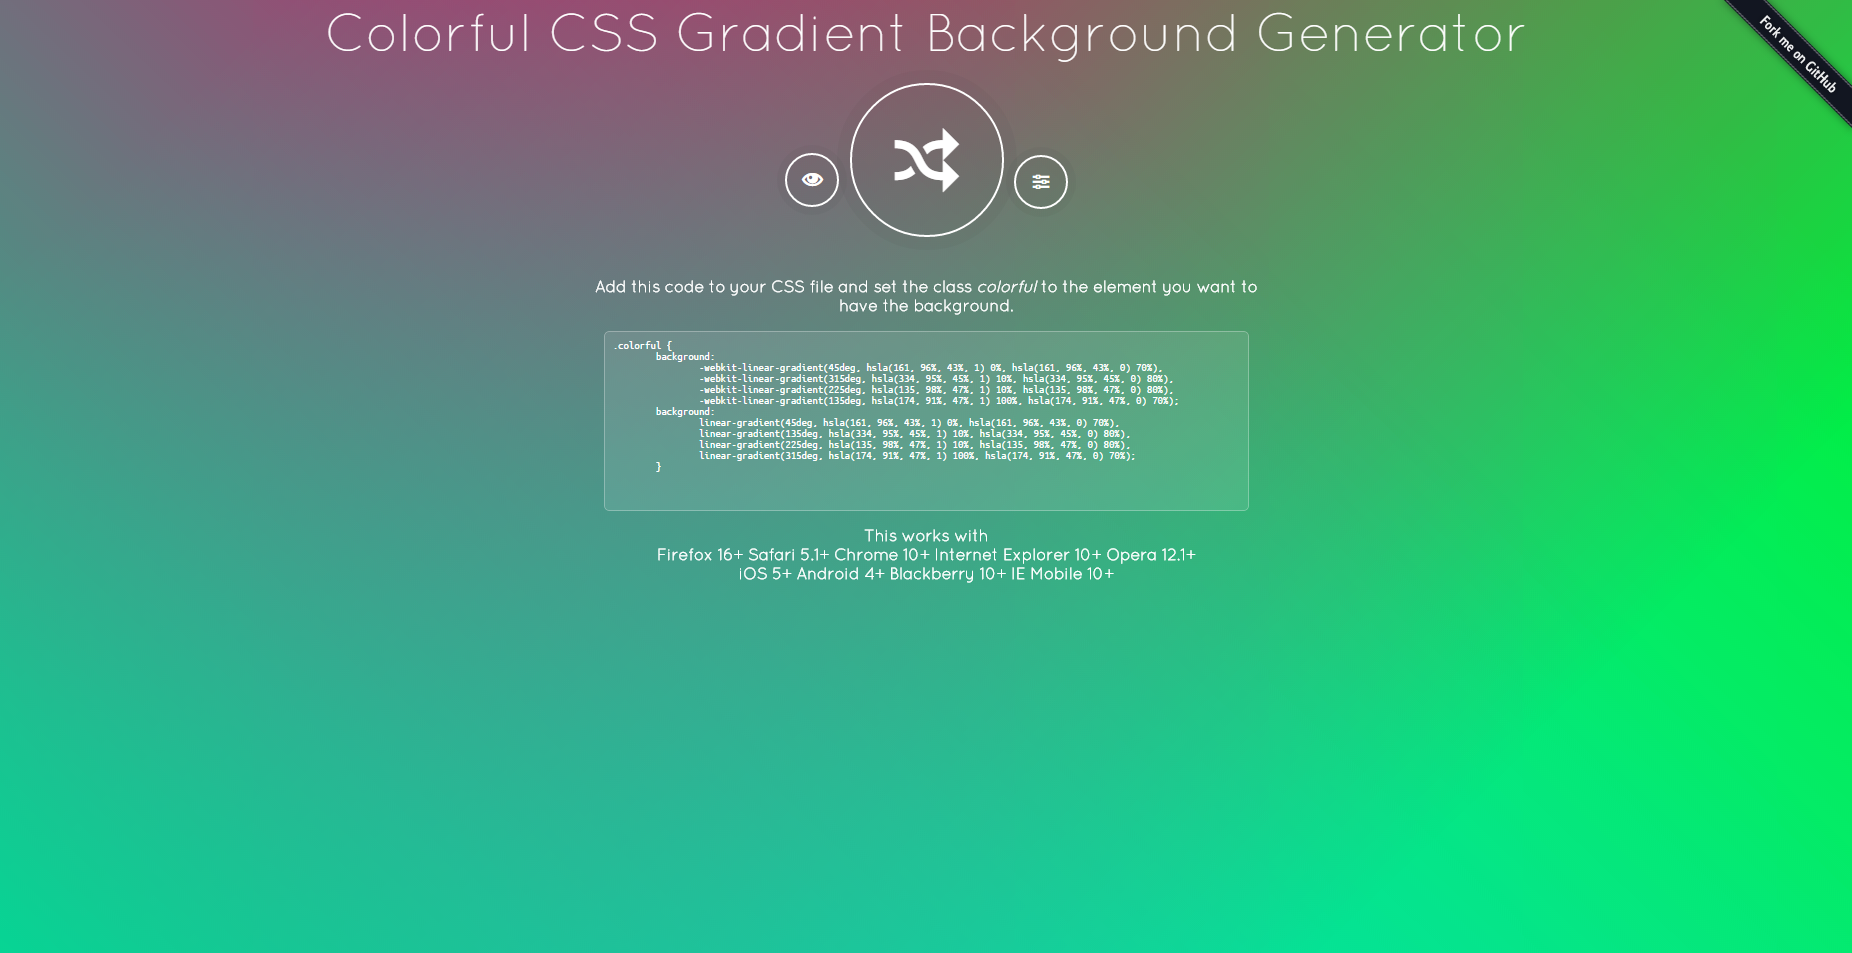 Unduh 9200 Koleksi Background Gradient Generator HD Gratis